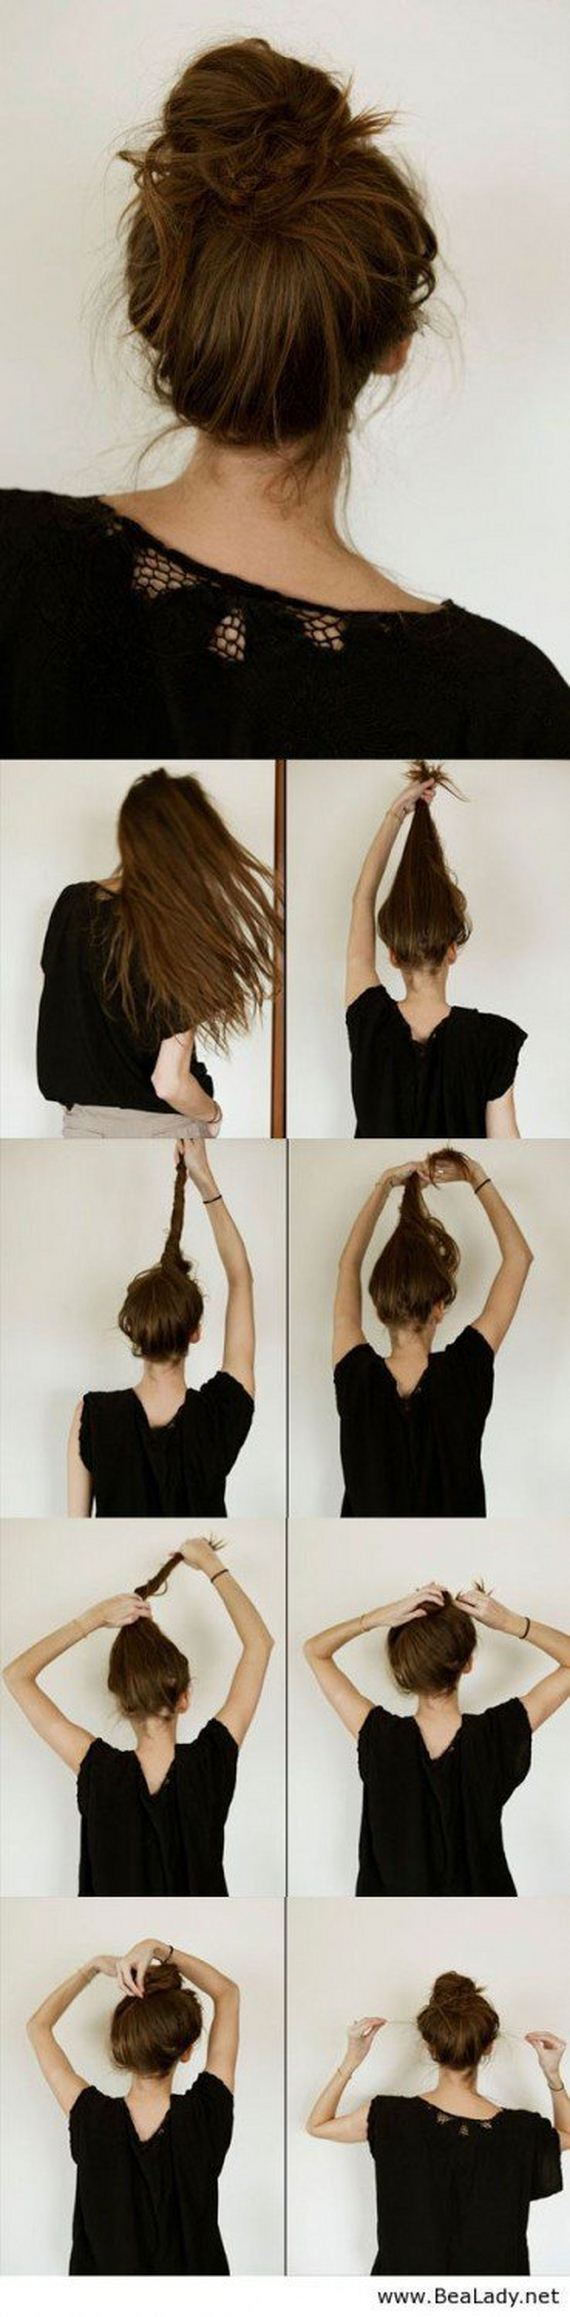 08-DIY-Hairstyles-for-Long-Hair